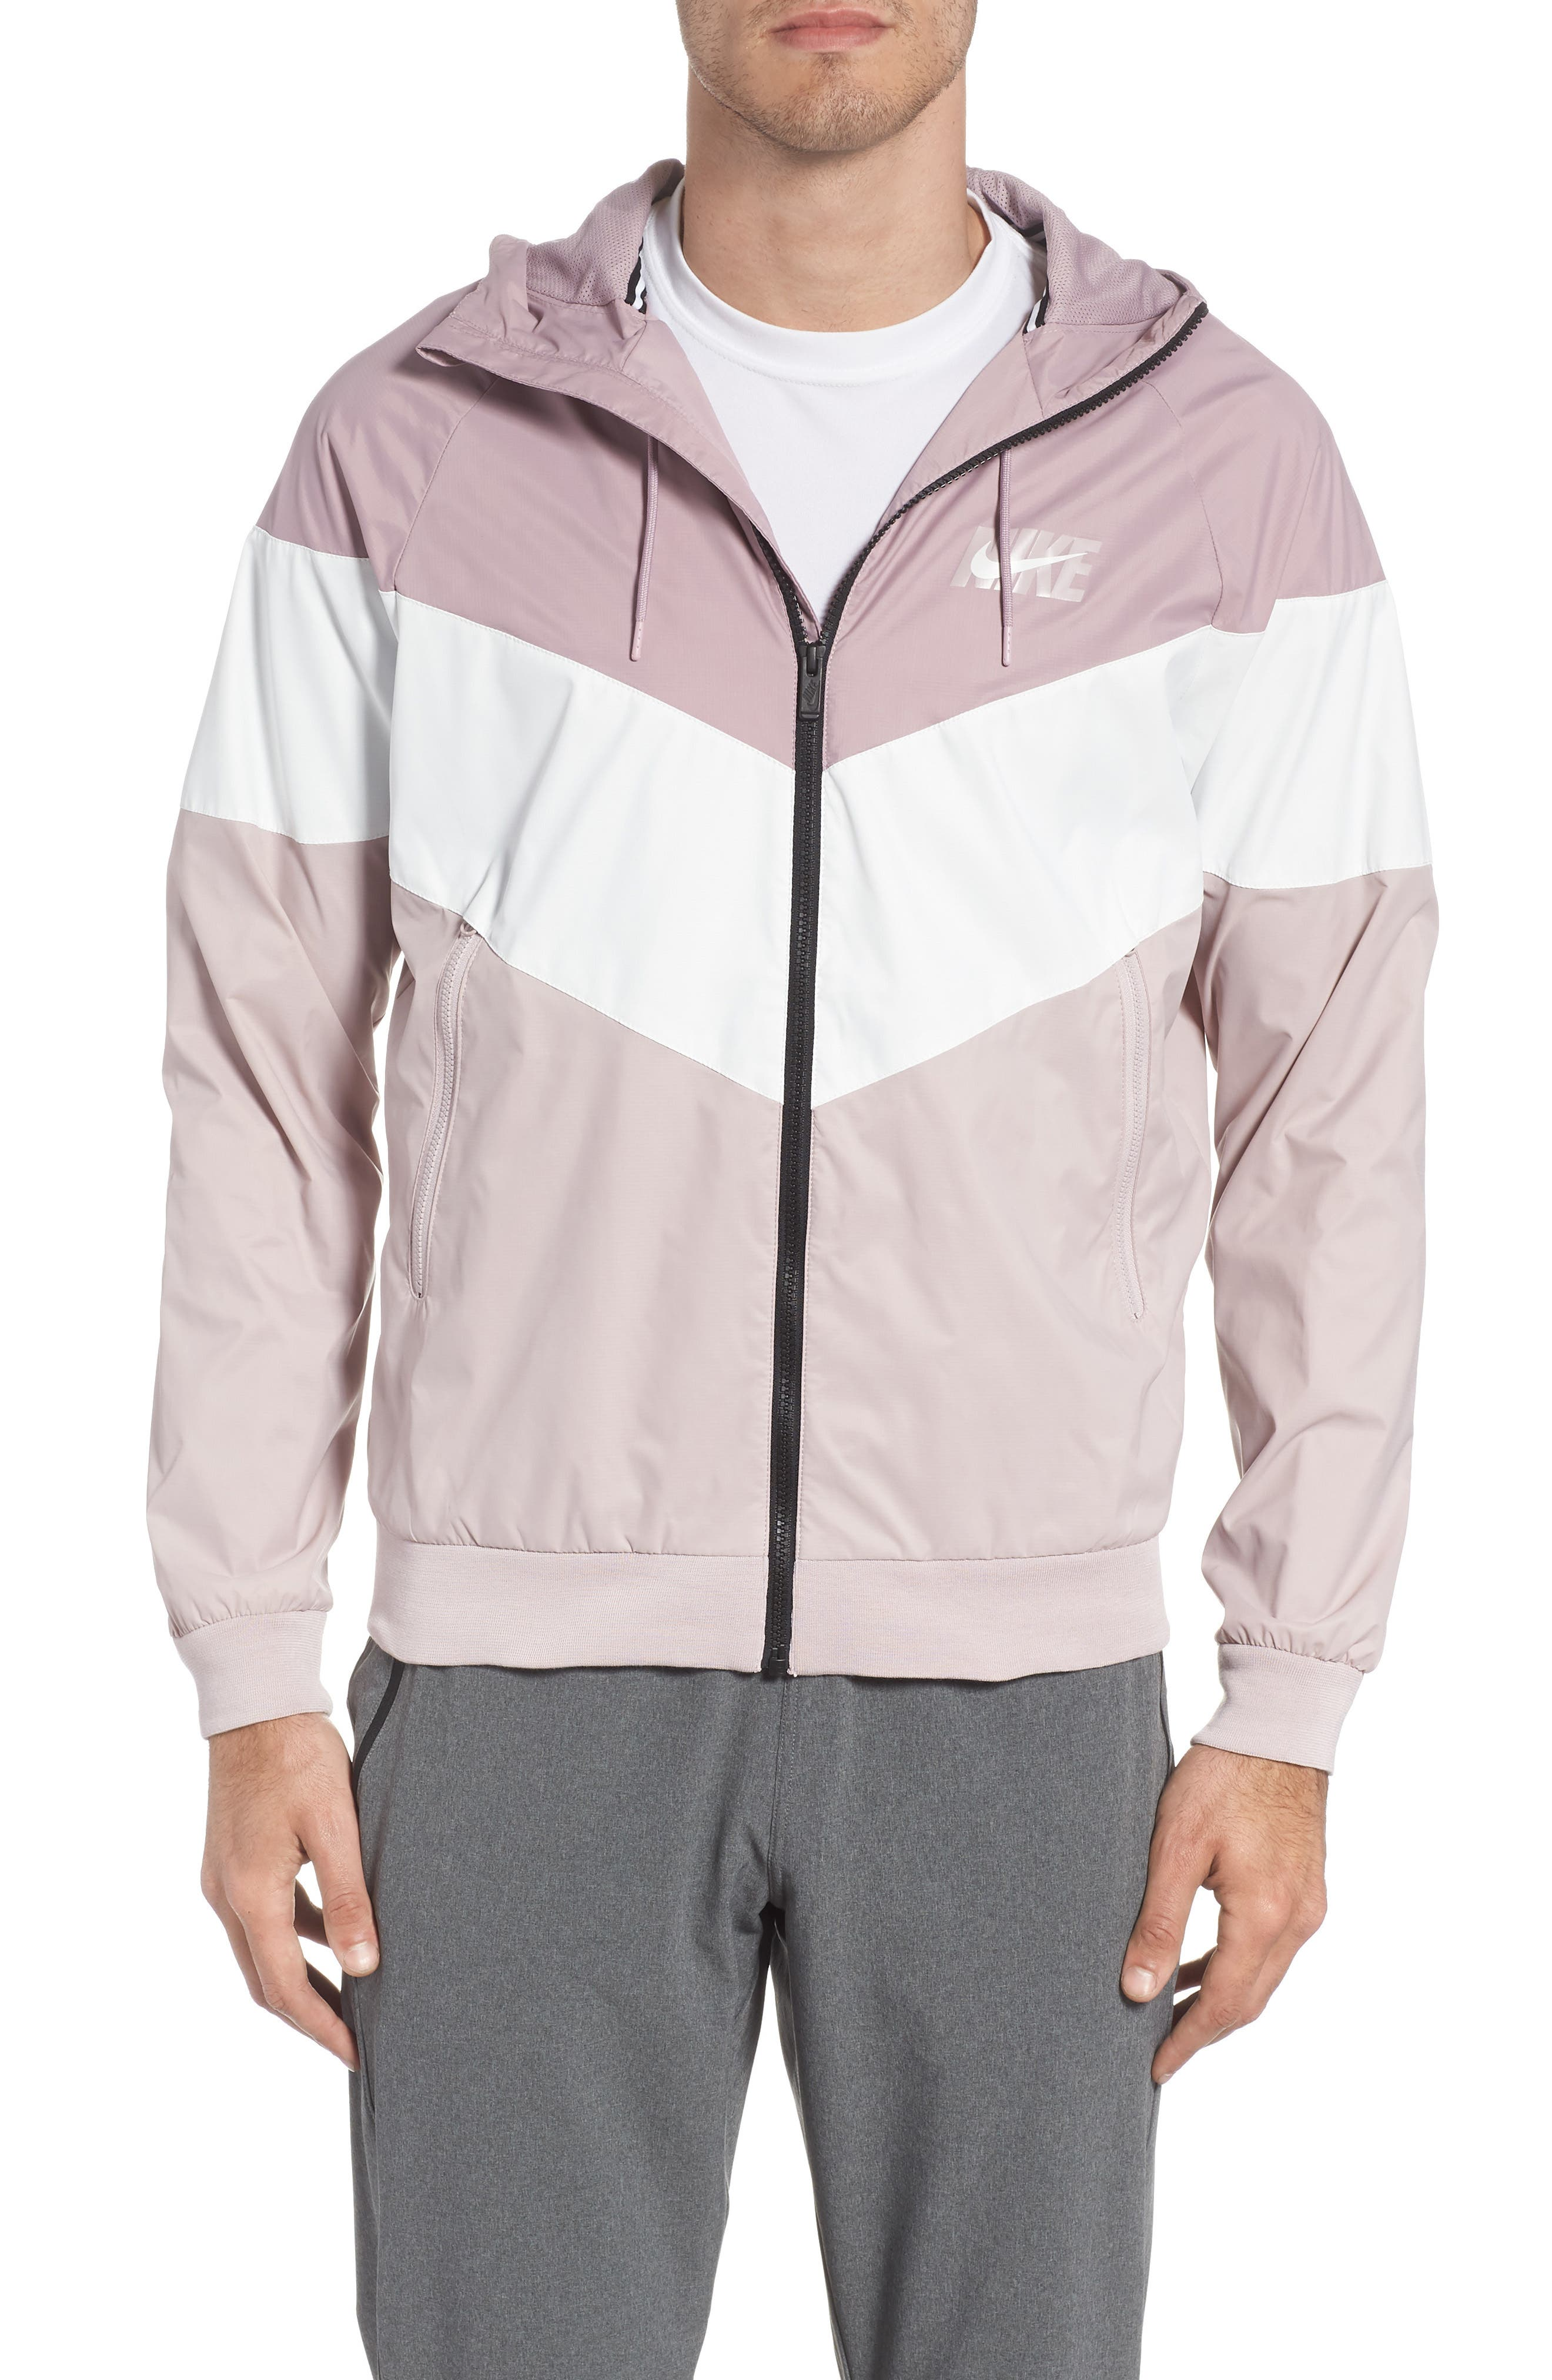 Windrunner Wind & Water Repellent Hooded Jacket,                         Main,                         color, Elemental Rose/ Summit White